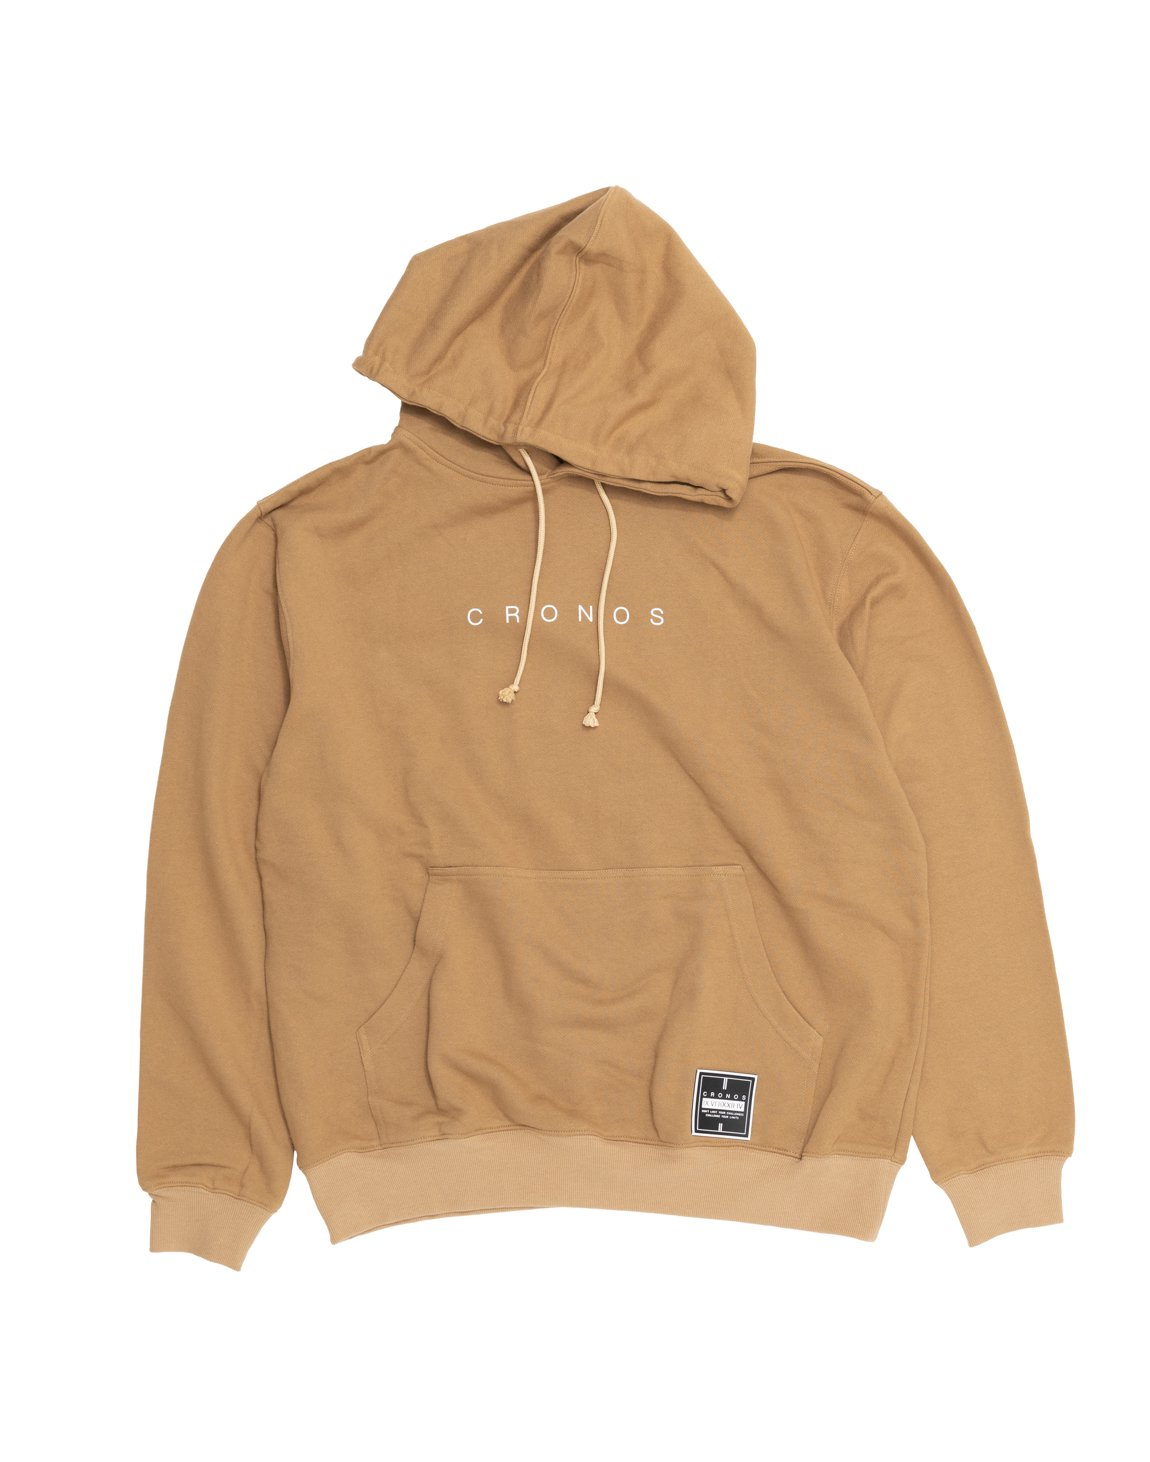 <img class='new_mark_img1' src='https://img.shop-pro.jp/img/new/icons1.gif' style='border:none;display:inline;margin:0px;padding:0px;width:auto;' />CRONOS NUMERALS PATCH PARKA 【BROWN】